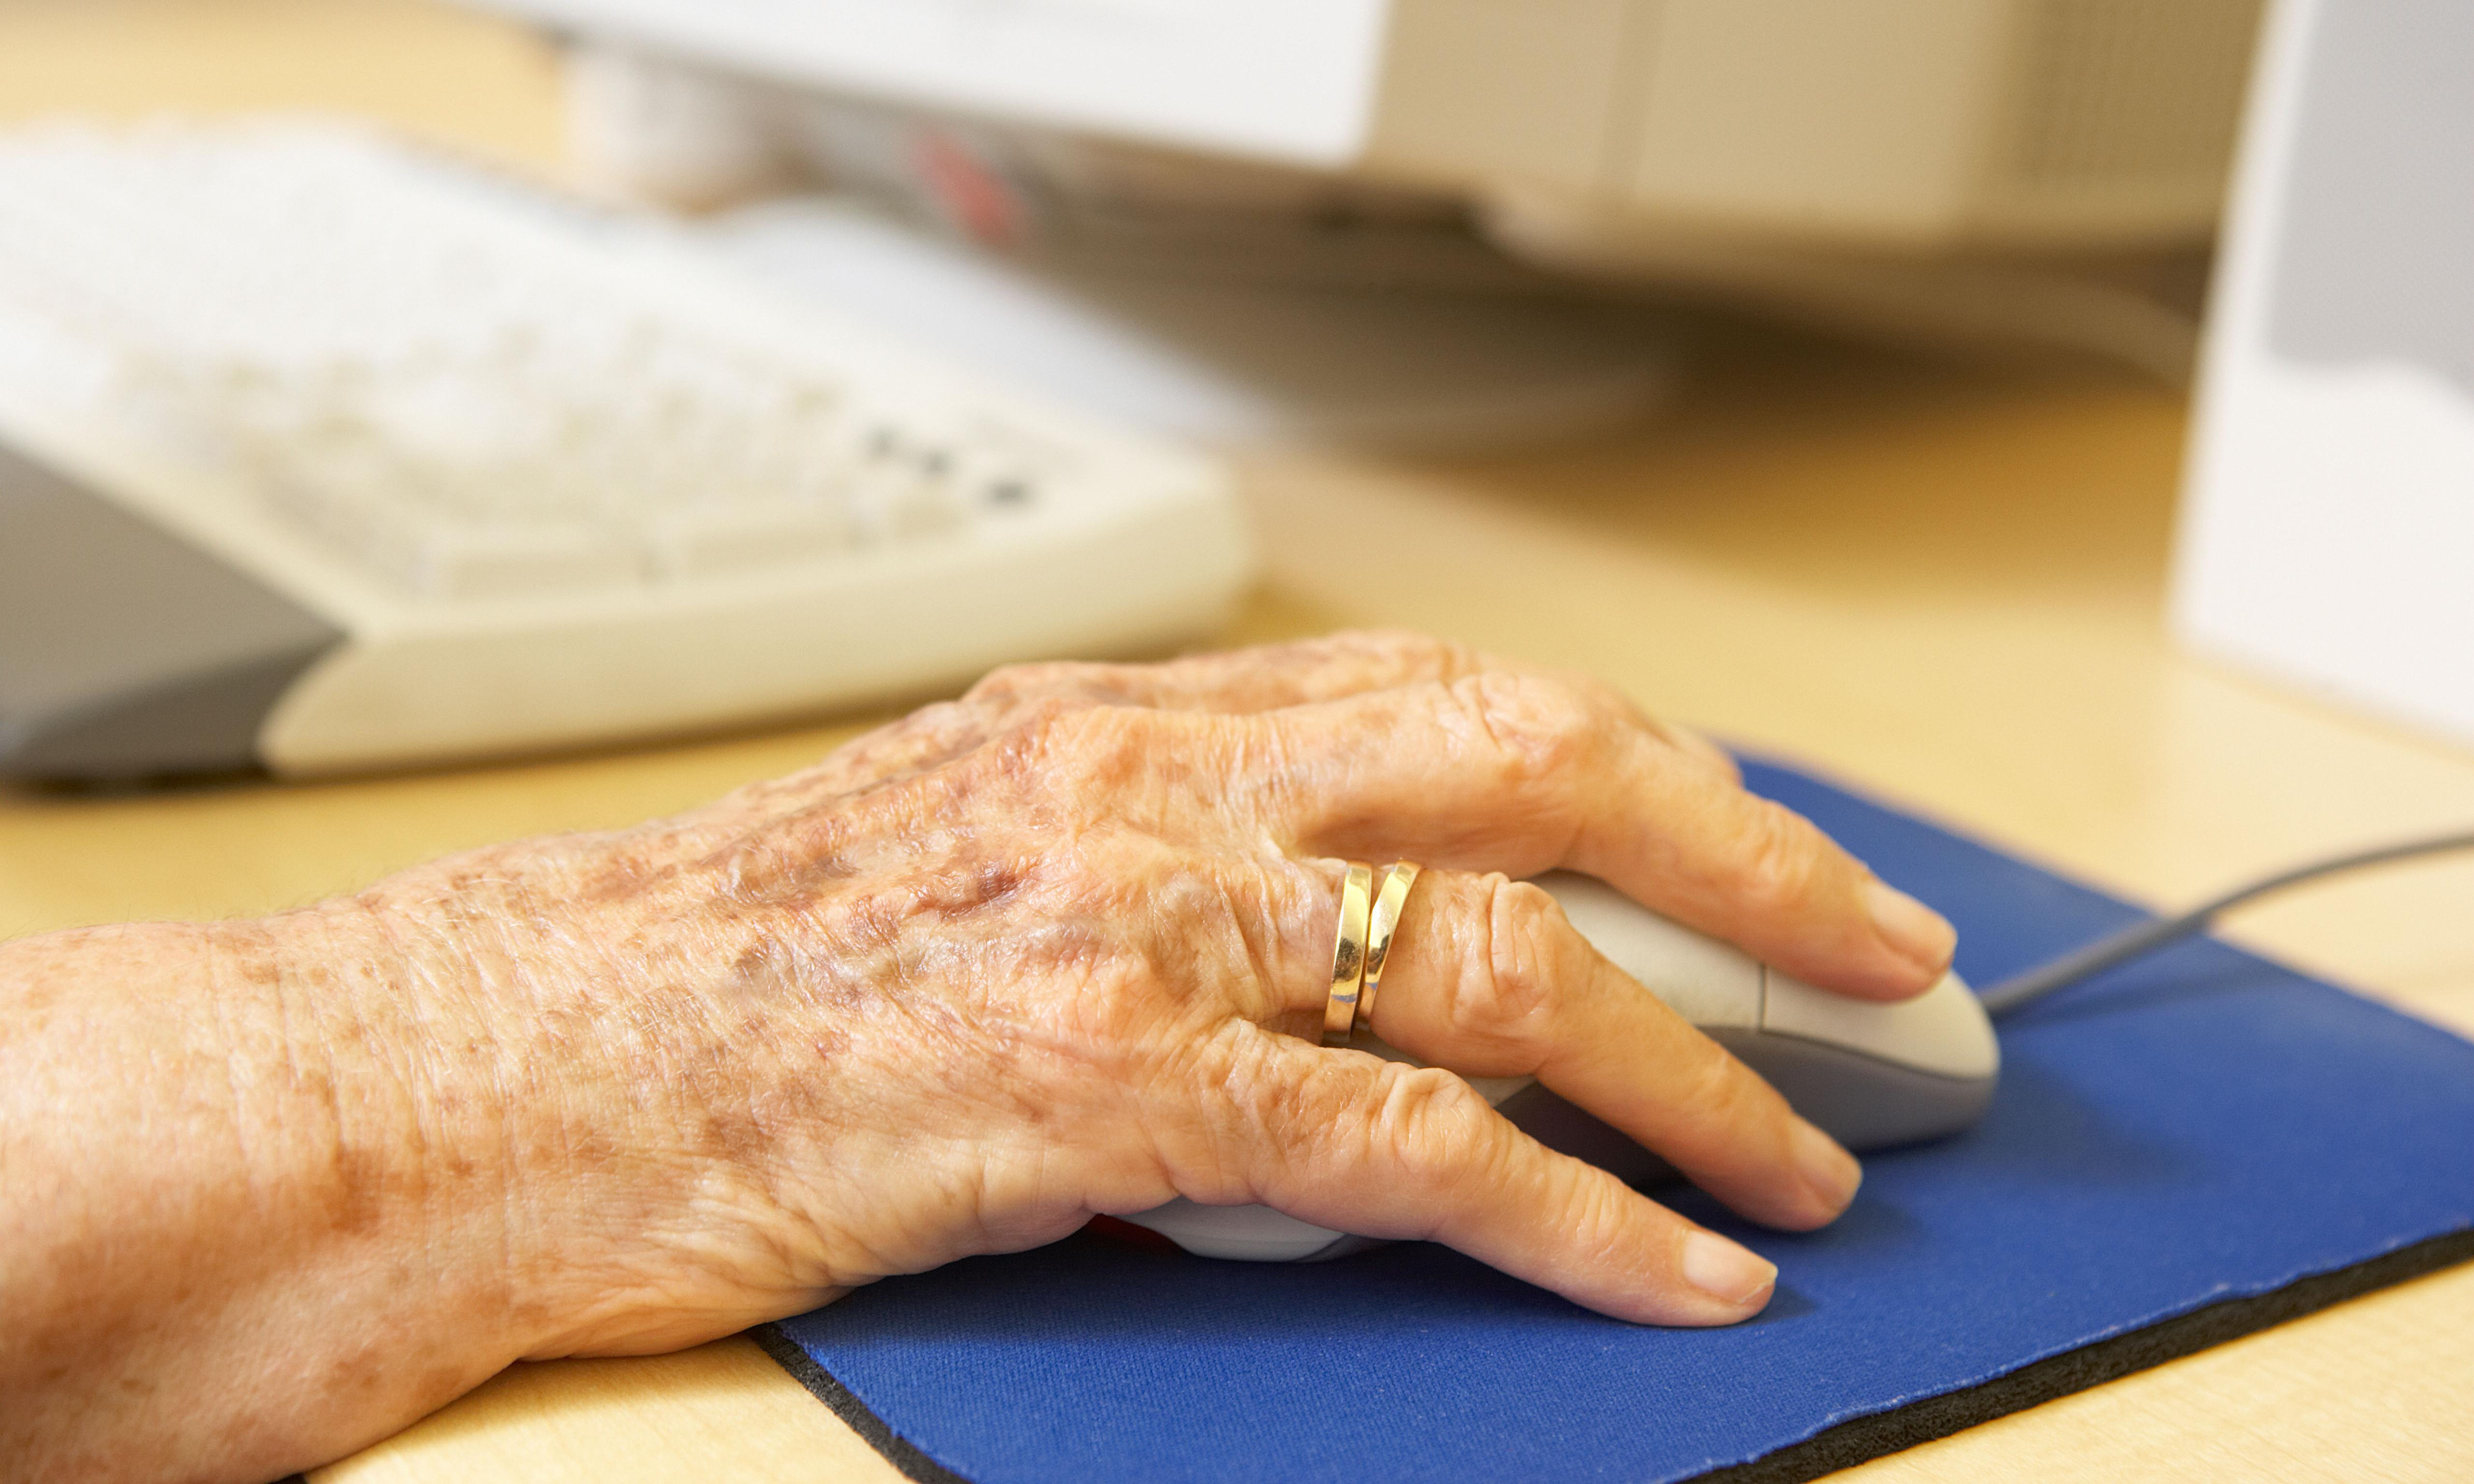 More than half of people aged 65 and over now shop online – ONS